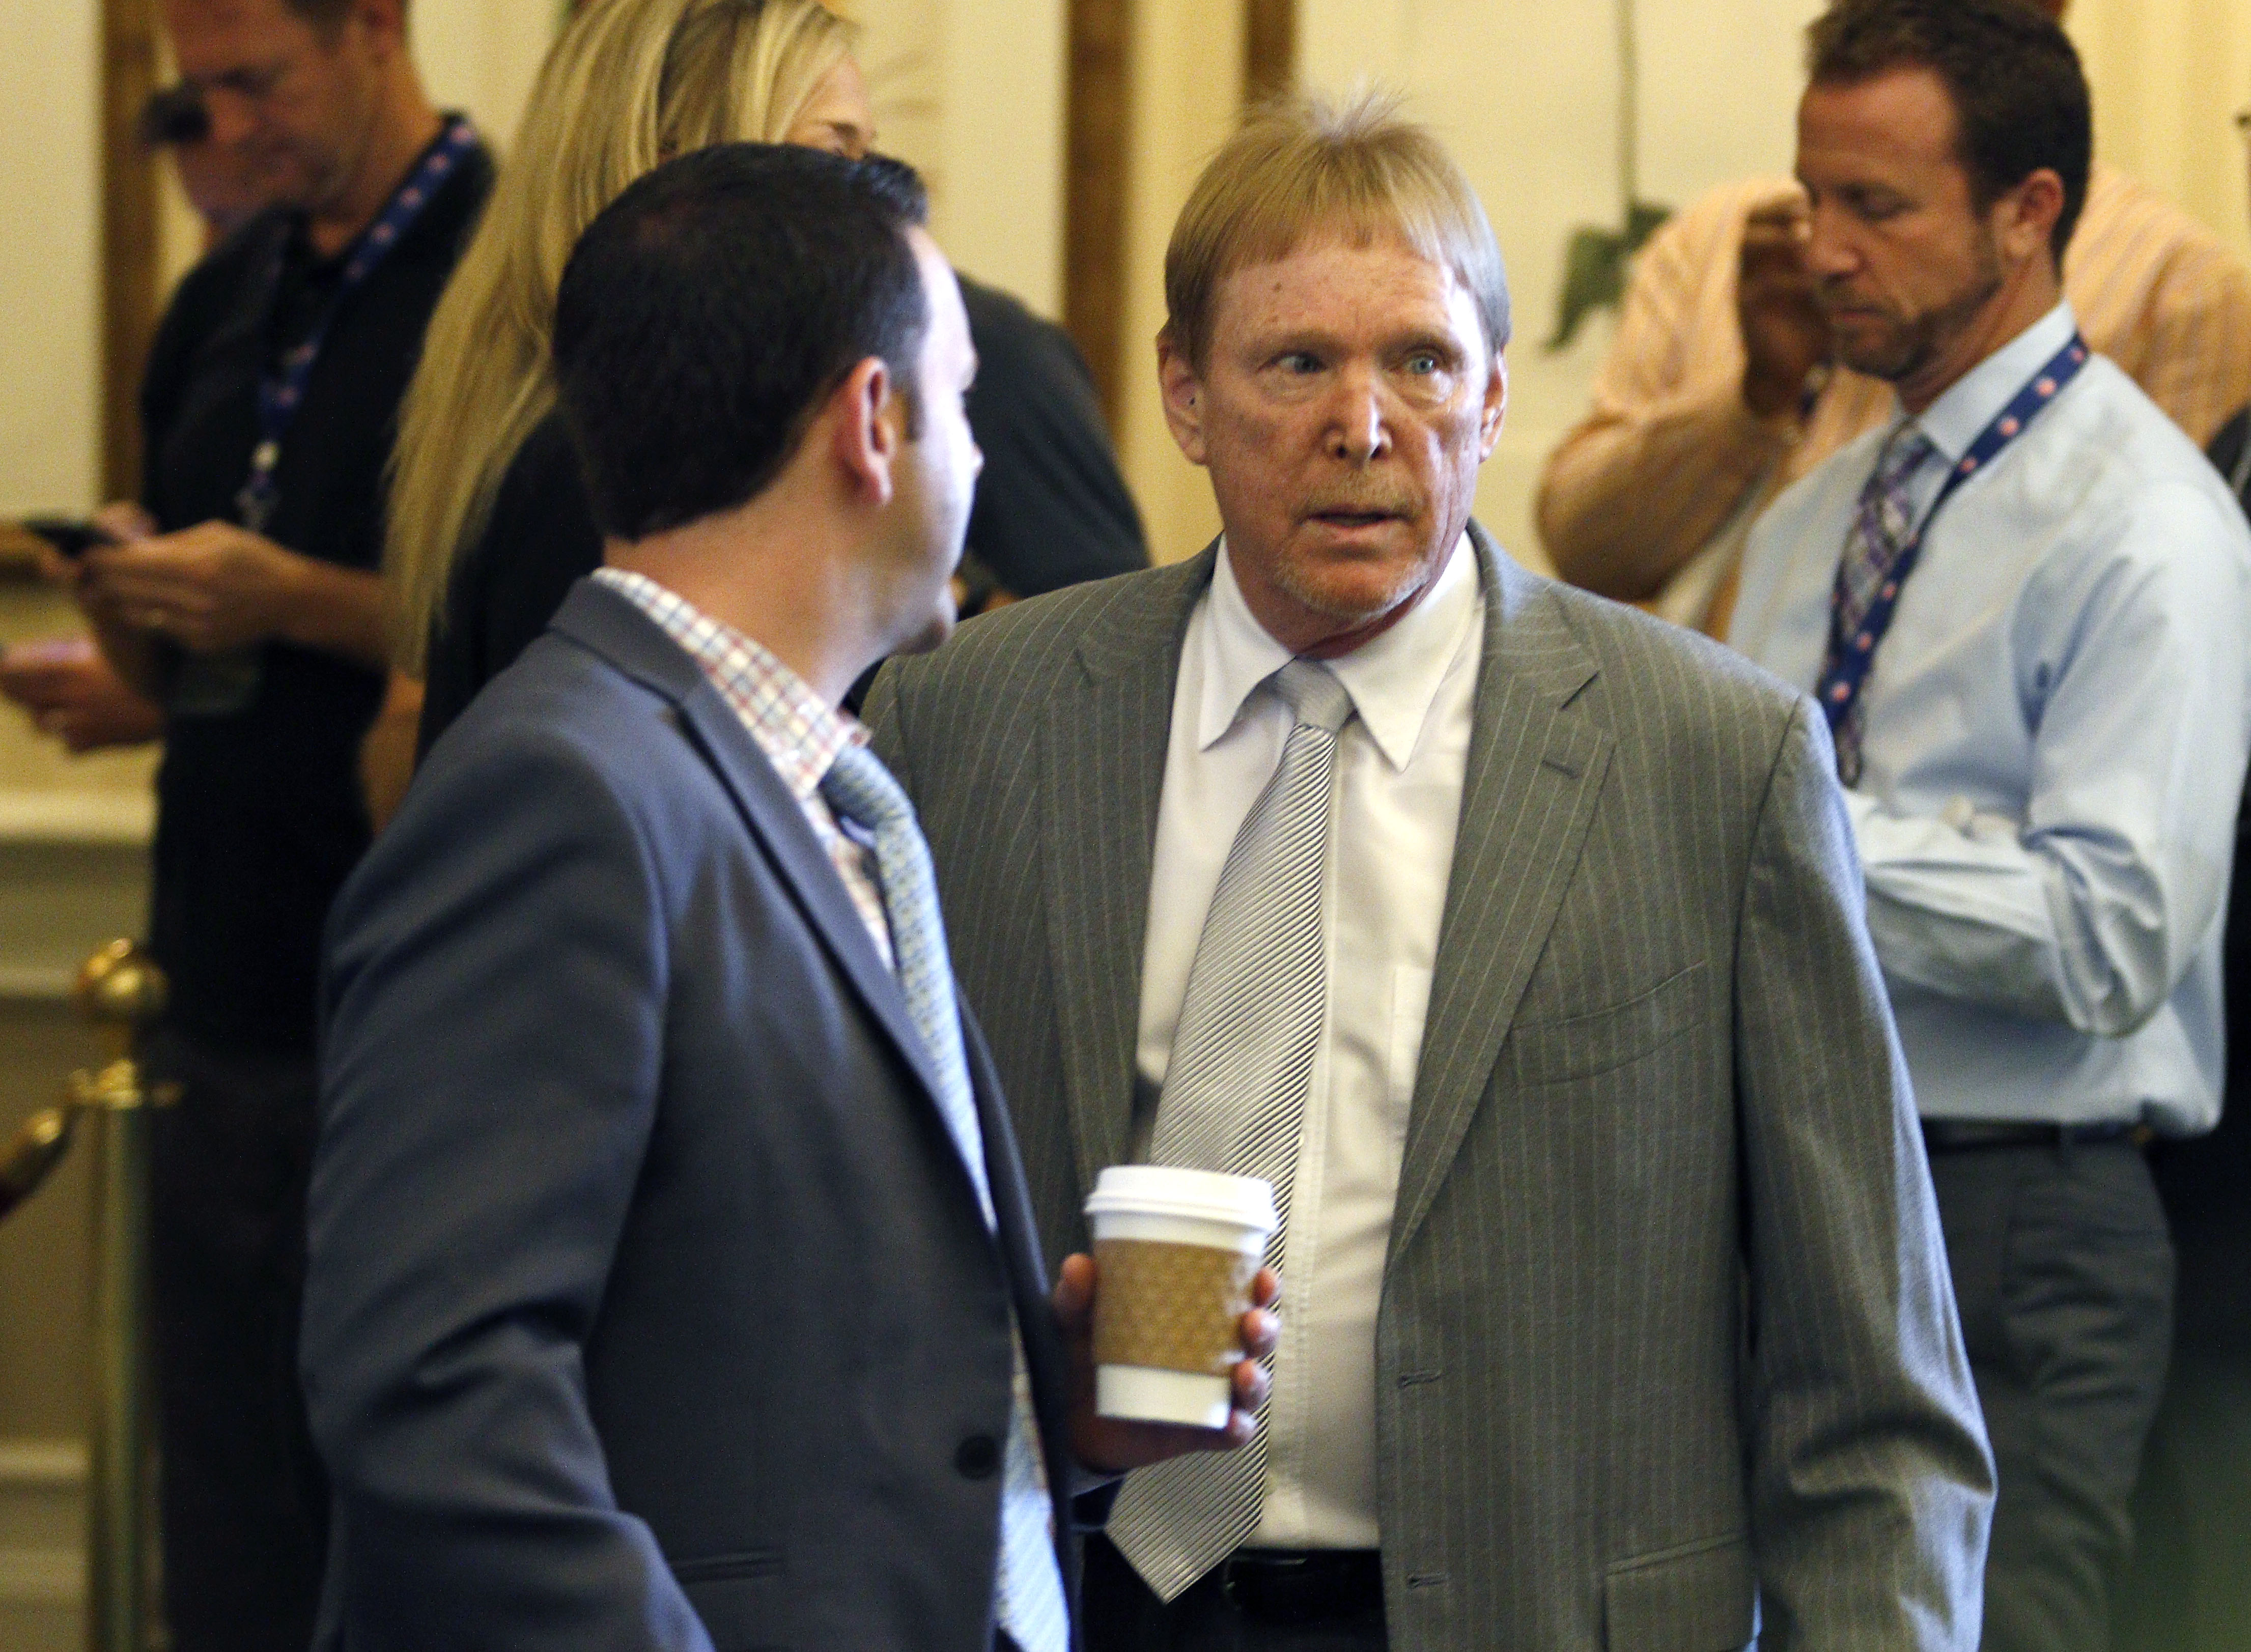 CORRECTS FIRST NAME TO MARK, NOT MIKE - Oakland Raiders owner Mark Davis, right,  makes his way into the NFL owner's meeting in Charlotte N.C., Tuesday, May 24, 2016. (AP Photo/Bob Leverone)